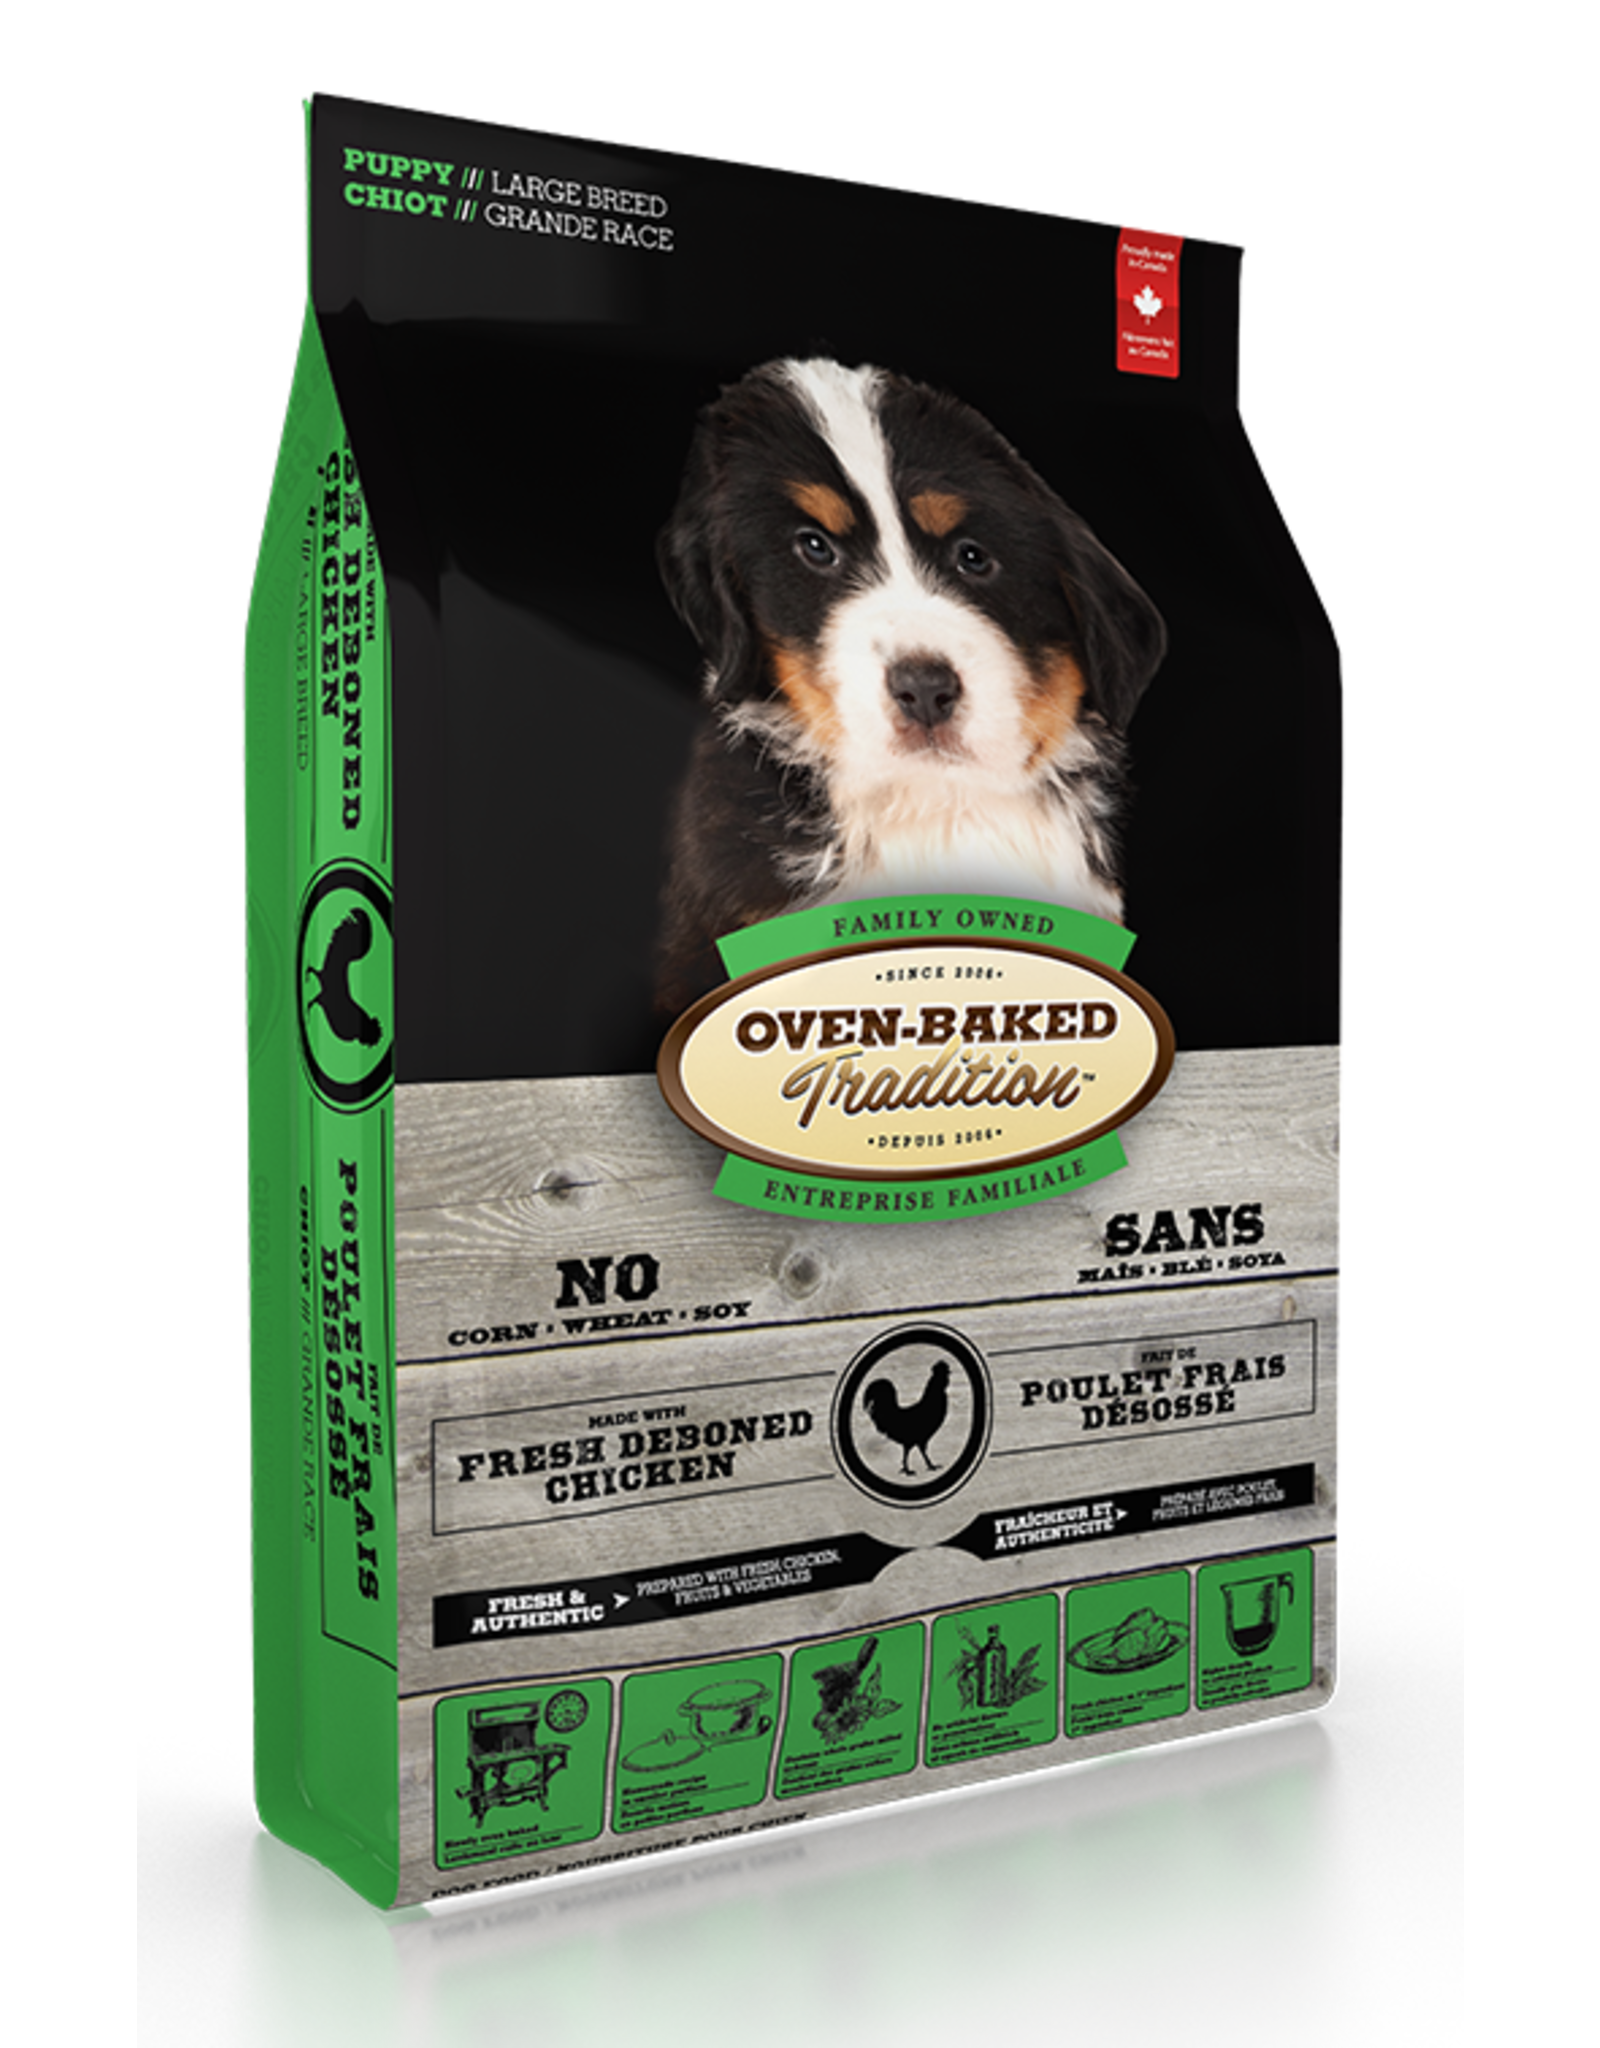 Oven Baked Tradition Oven Baked Tradition - Puppy Large Breed